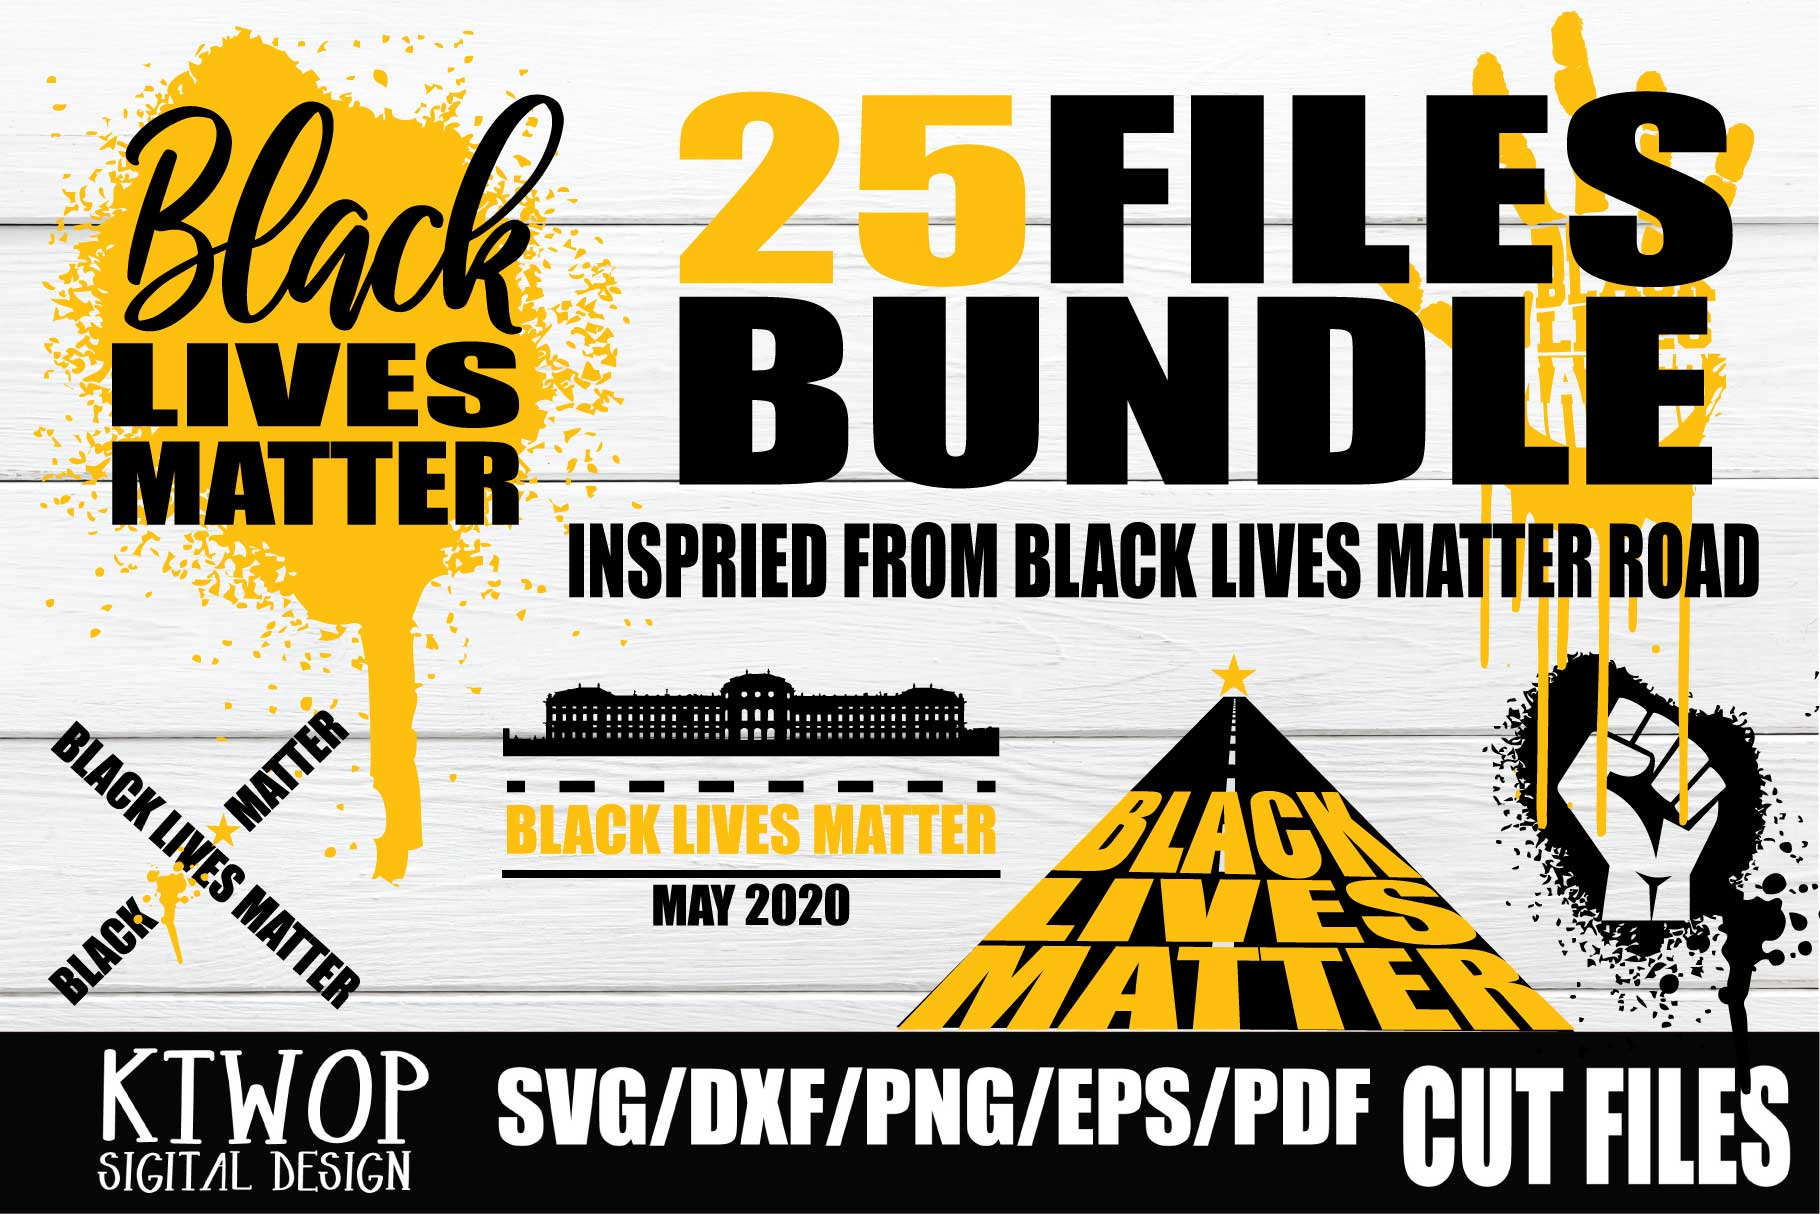 Download Free Black Lives Matter Bundle Graphic By Ktwop Creative Fabrica for Cricut Explore, Silhouette and other cutting machines.